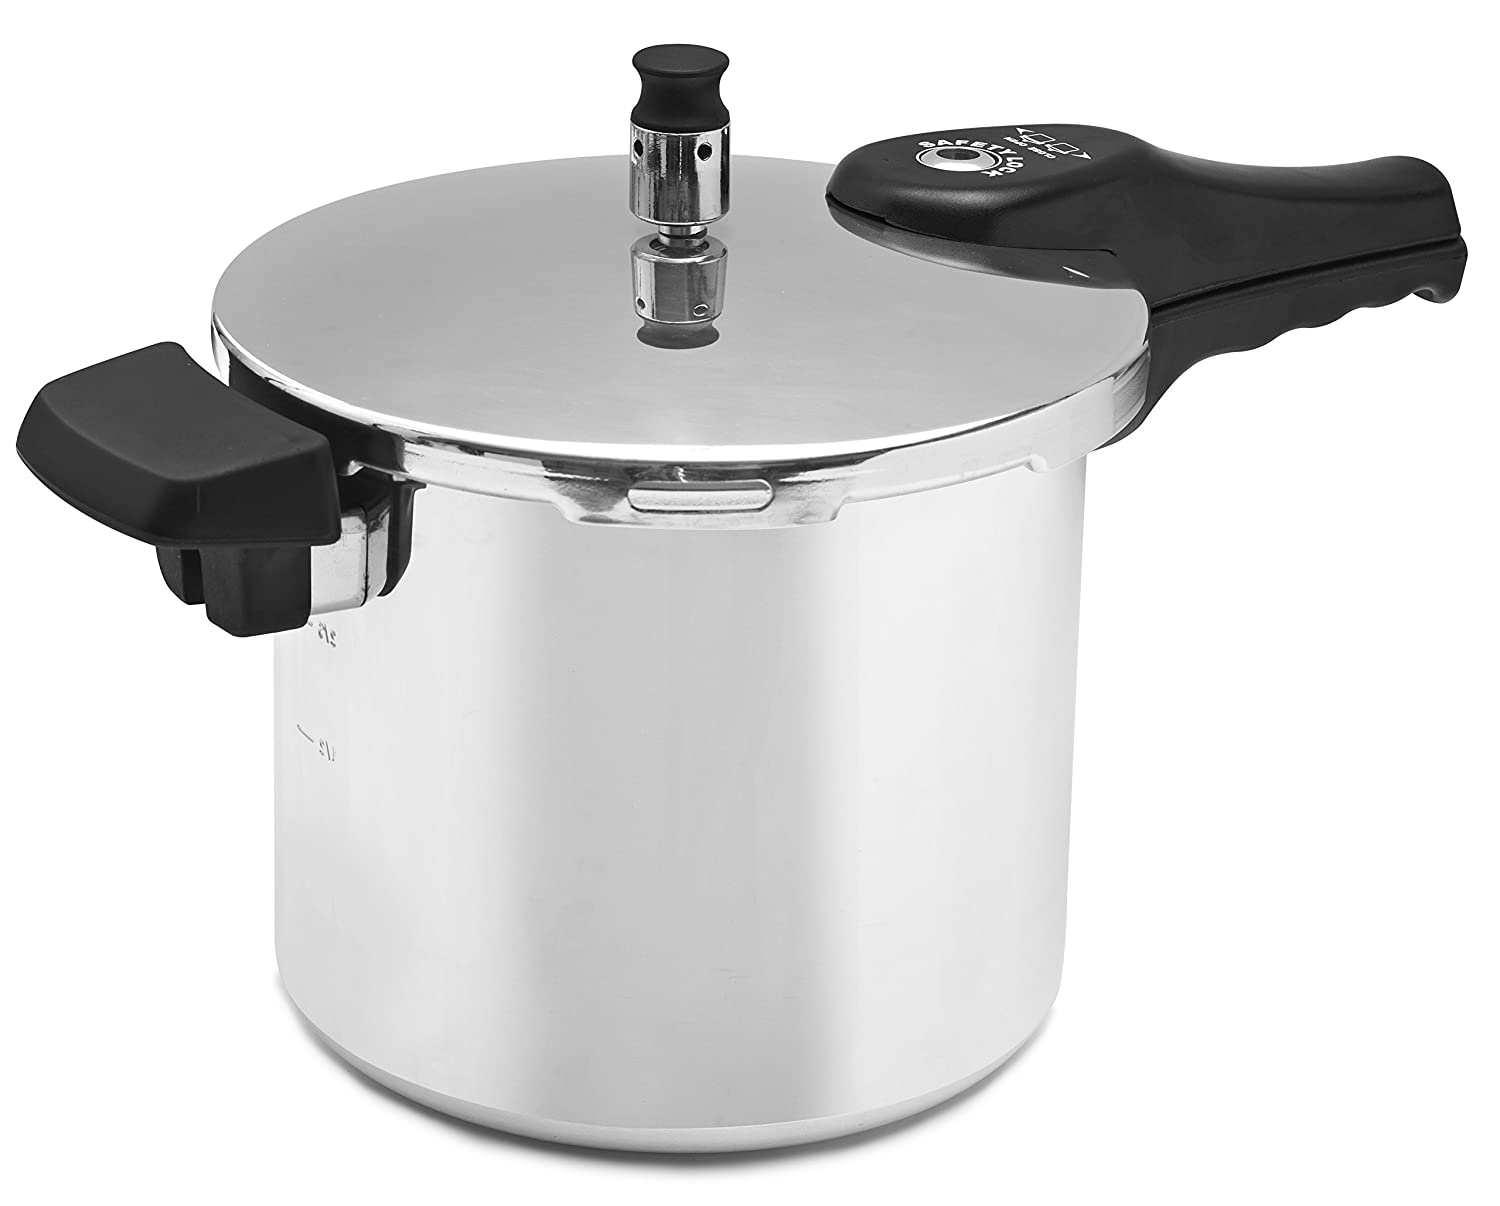 Amazon.com: Cook Prep Eat 6 quart Pressure Cooker with Safety Features, Medium, Stovetop Pressure Cooker Express, Natural Aluminum, Silver: Kitchen & Dining